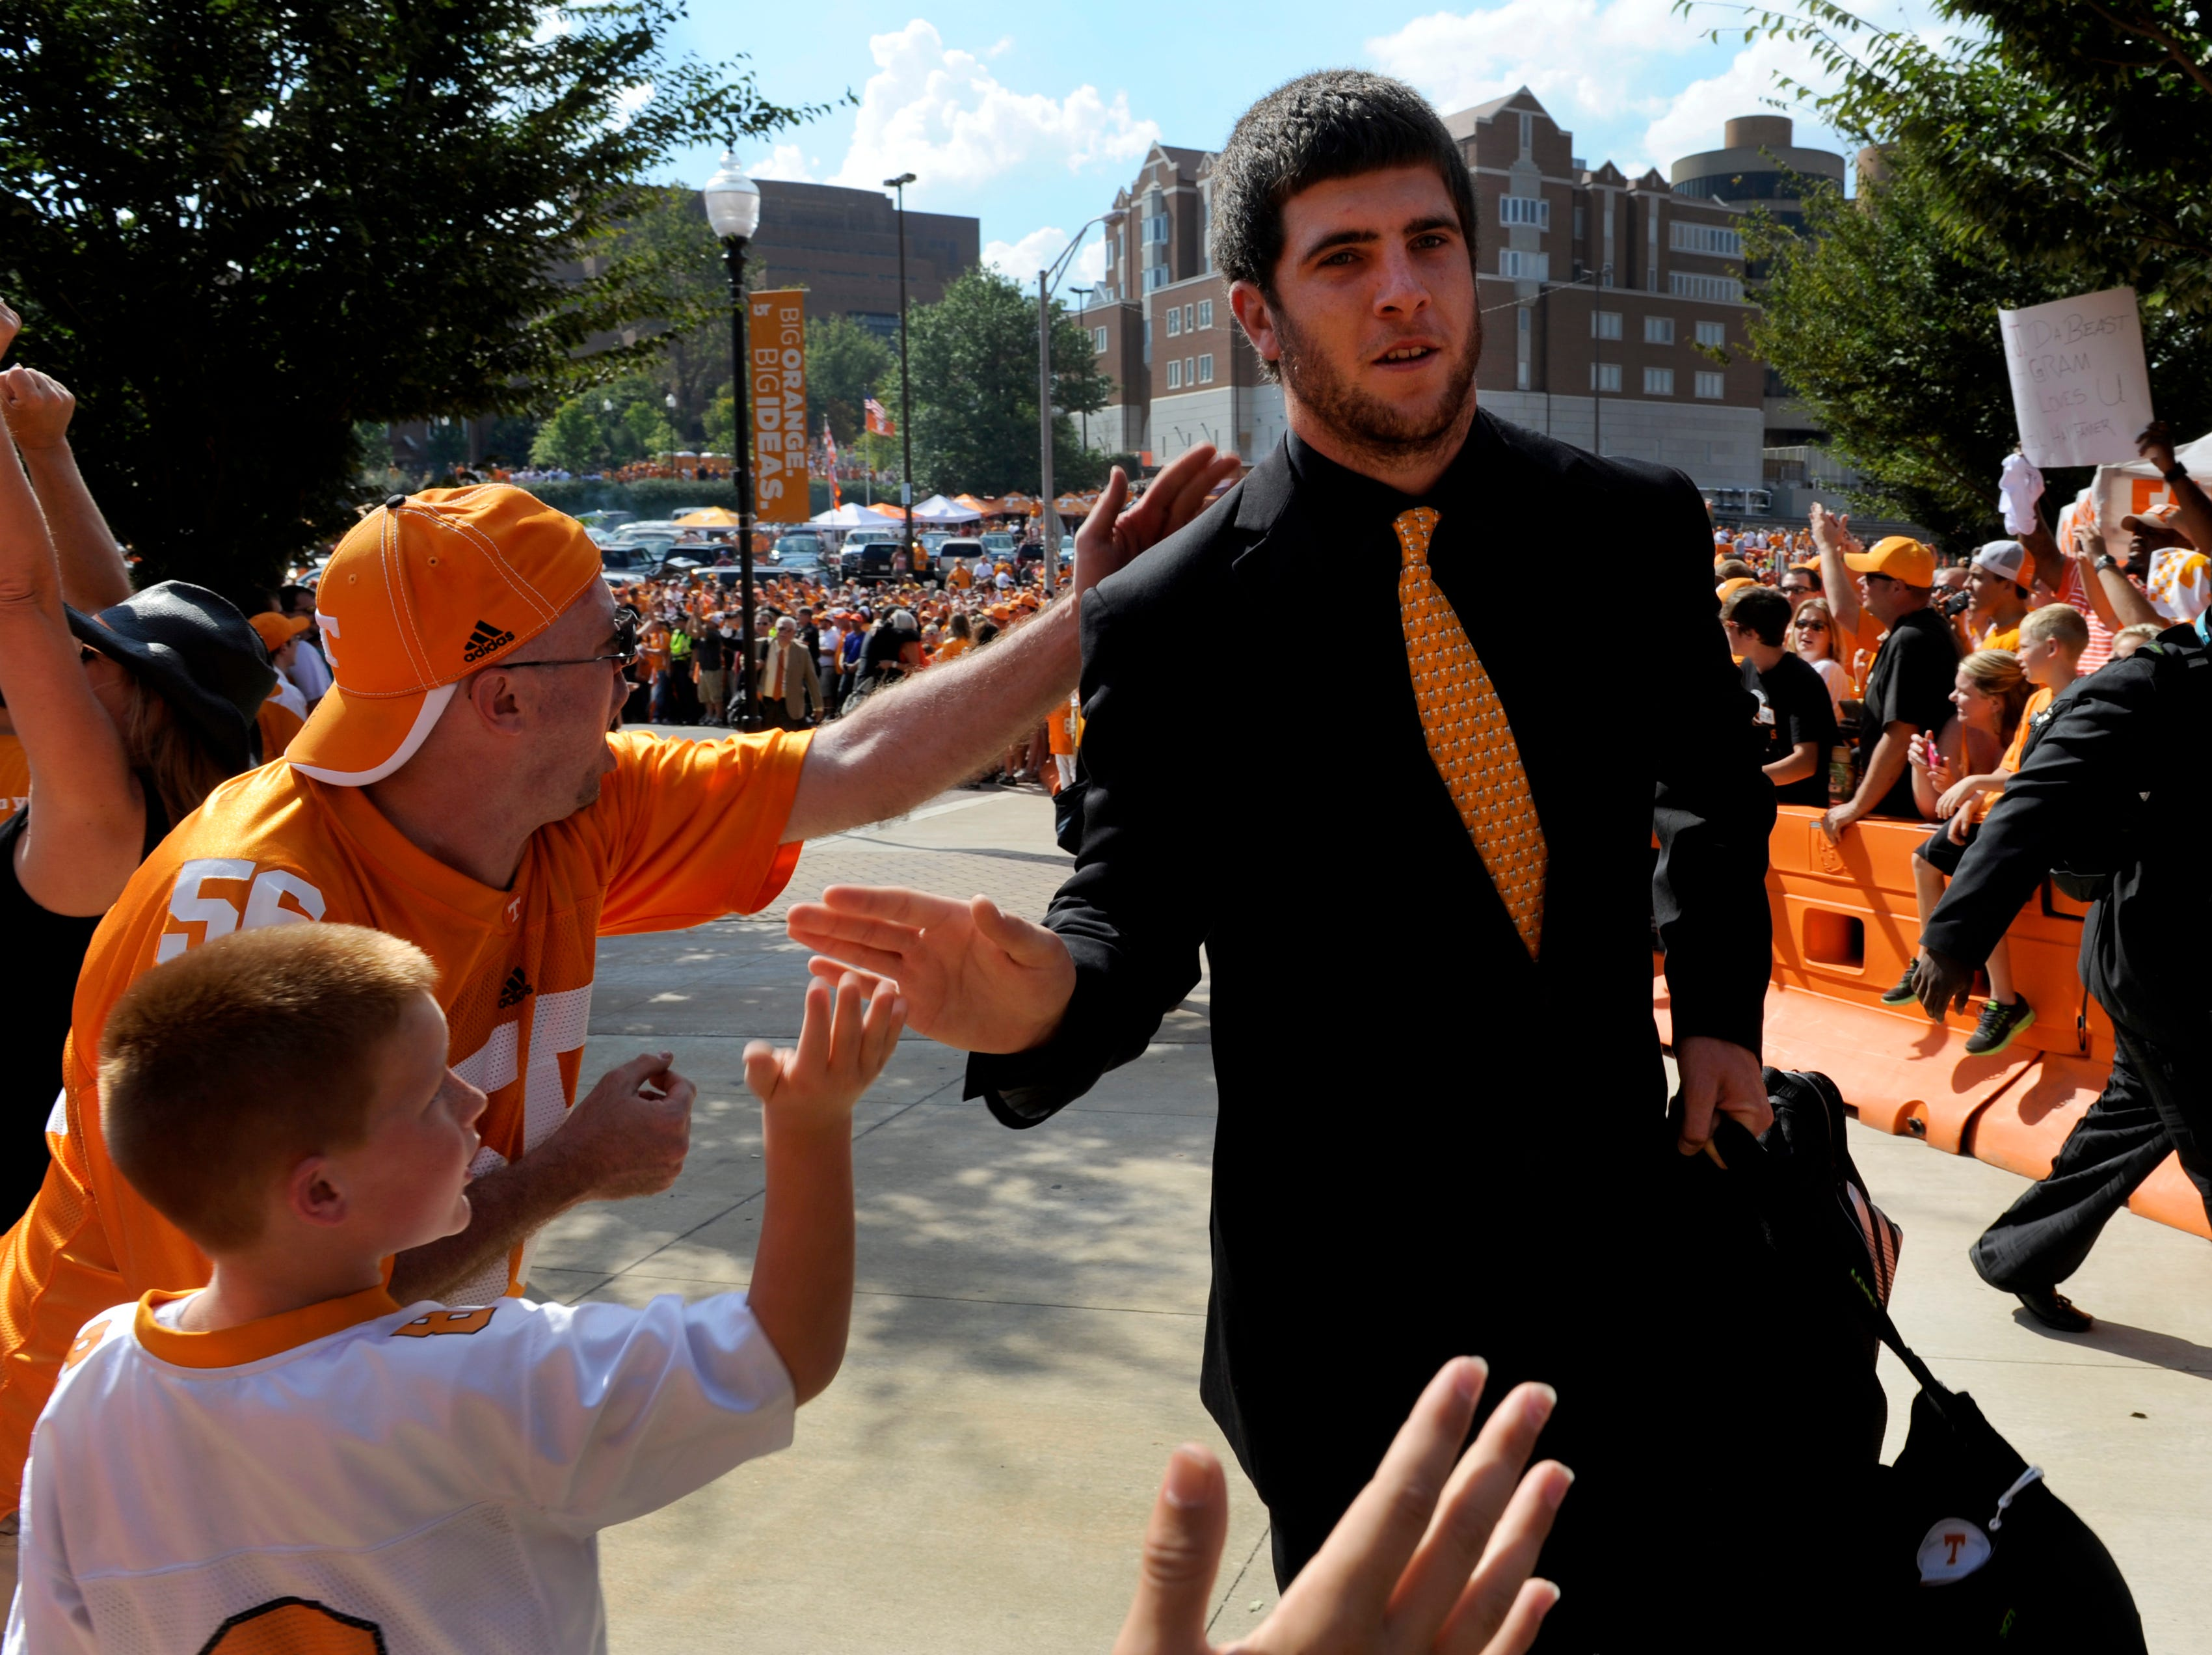 Tennessee quarterback Tyler Bray during the Vol Walk before their game against Florida Saturday, Sep. 15, 2012 outside Neyland Stadium in Knoxville.